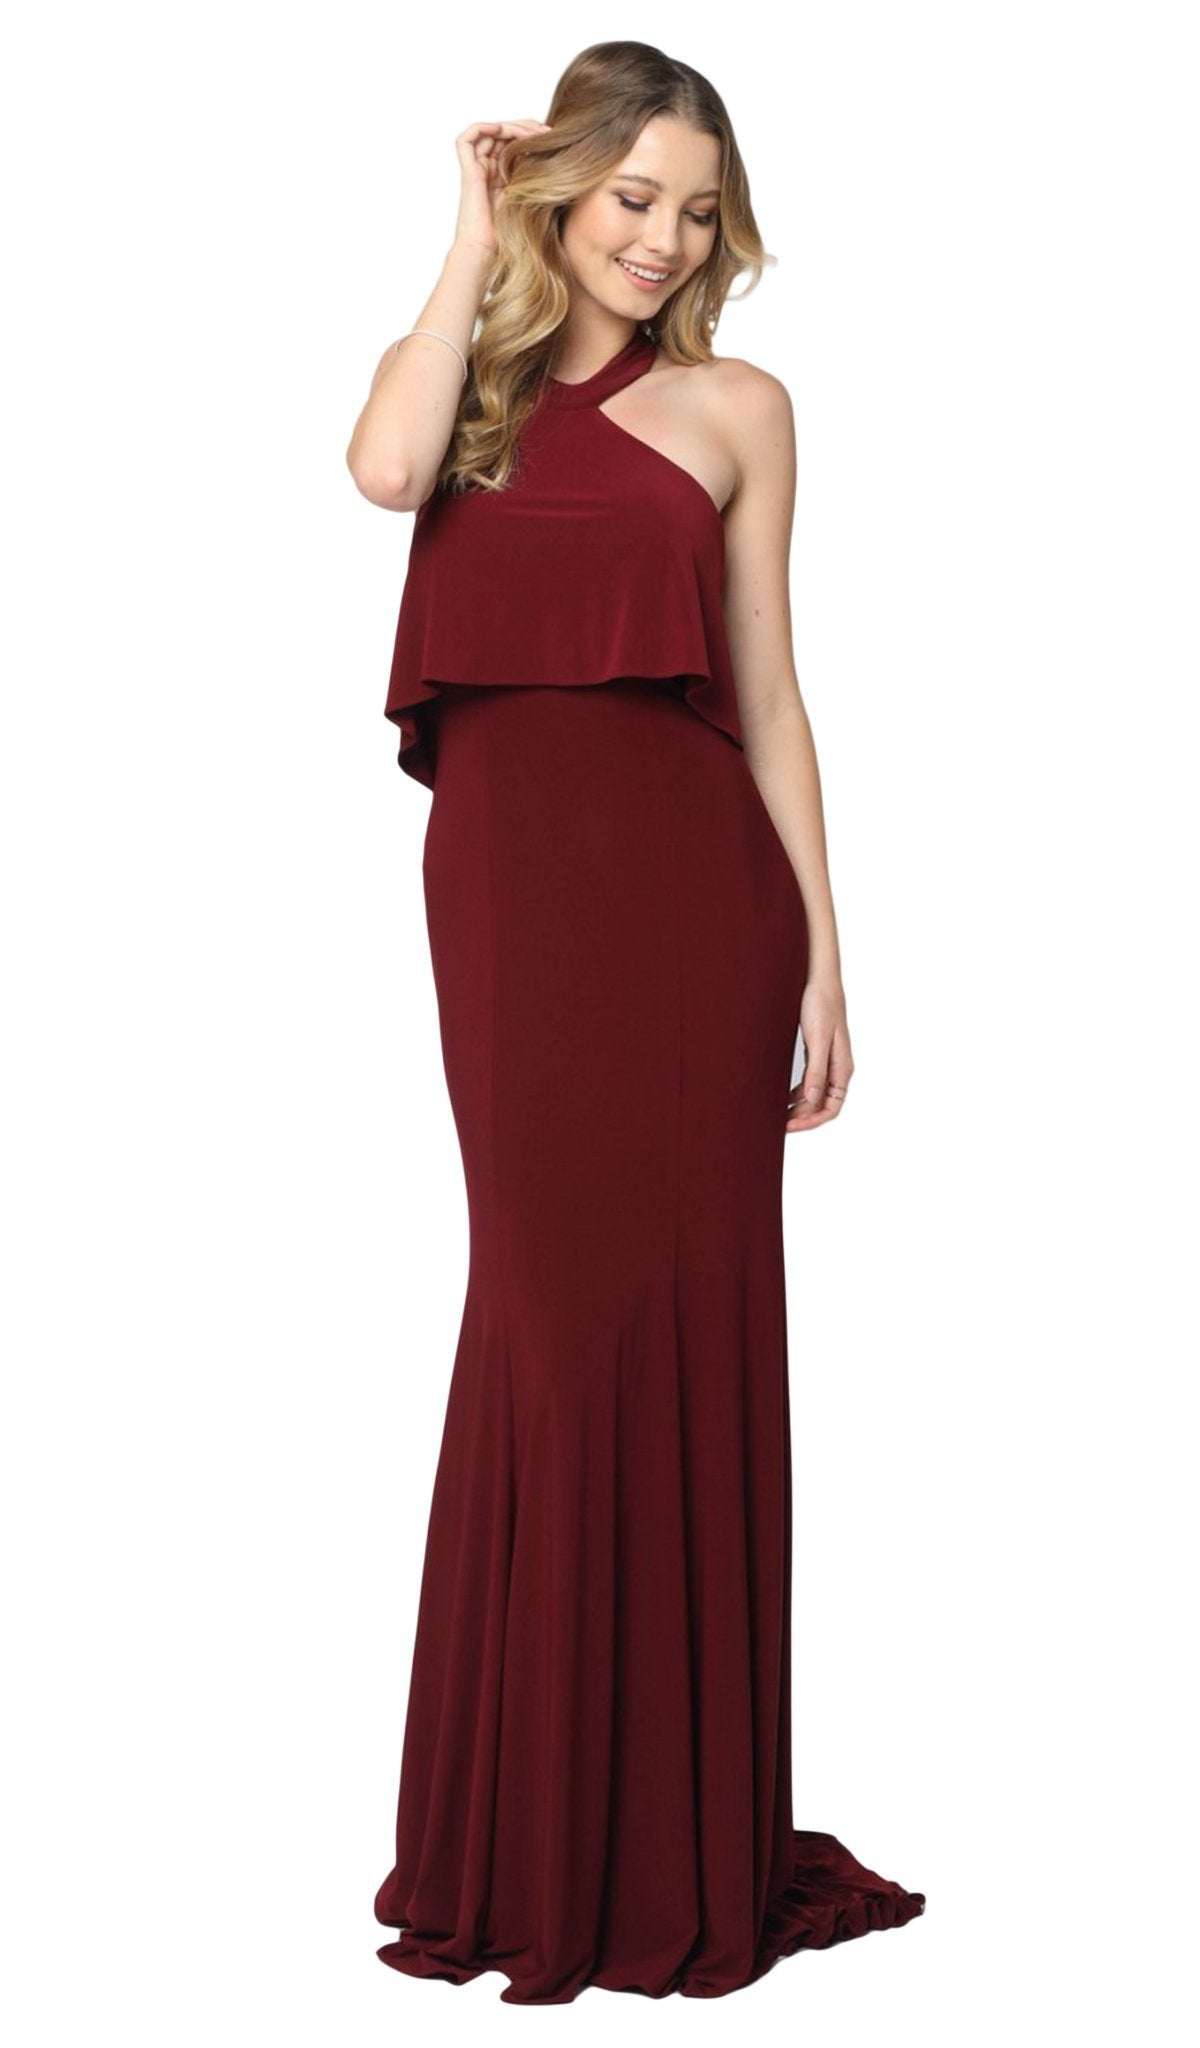 Nox Anabel - Q132 Halter Neck Trumpet Dress With Sweep Train In Red